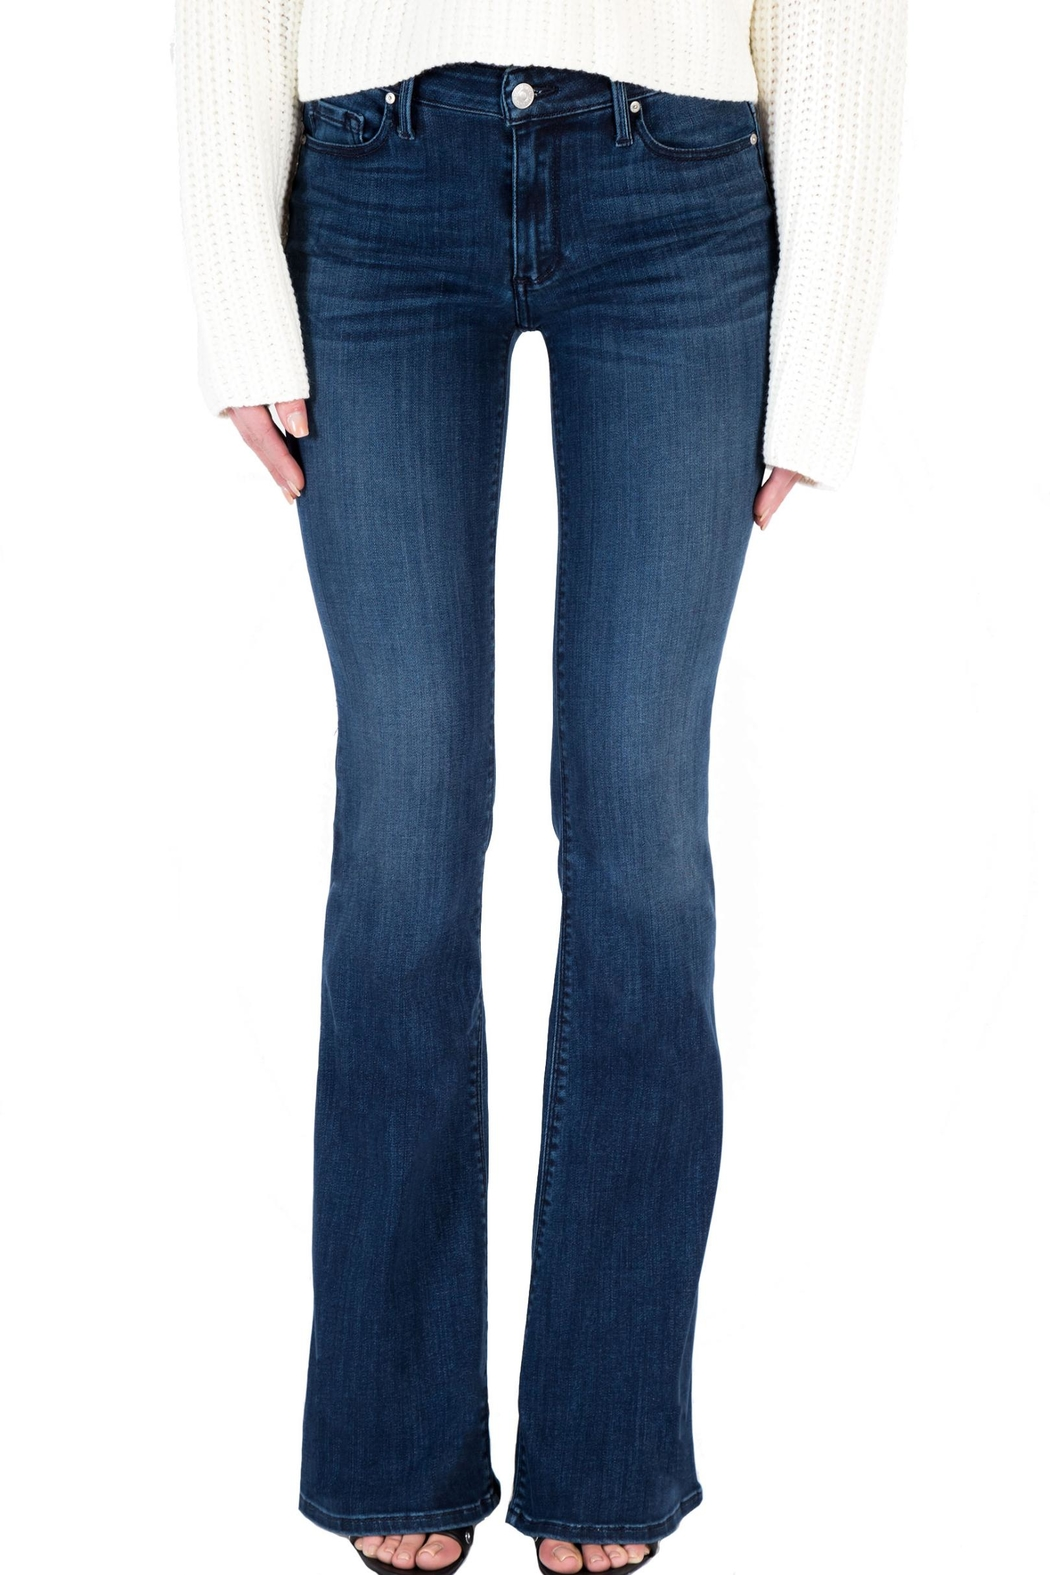 Black Orchid Denim Mia Mid-Rise Skinny-Flare - Front Cropped Image